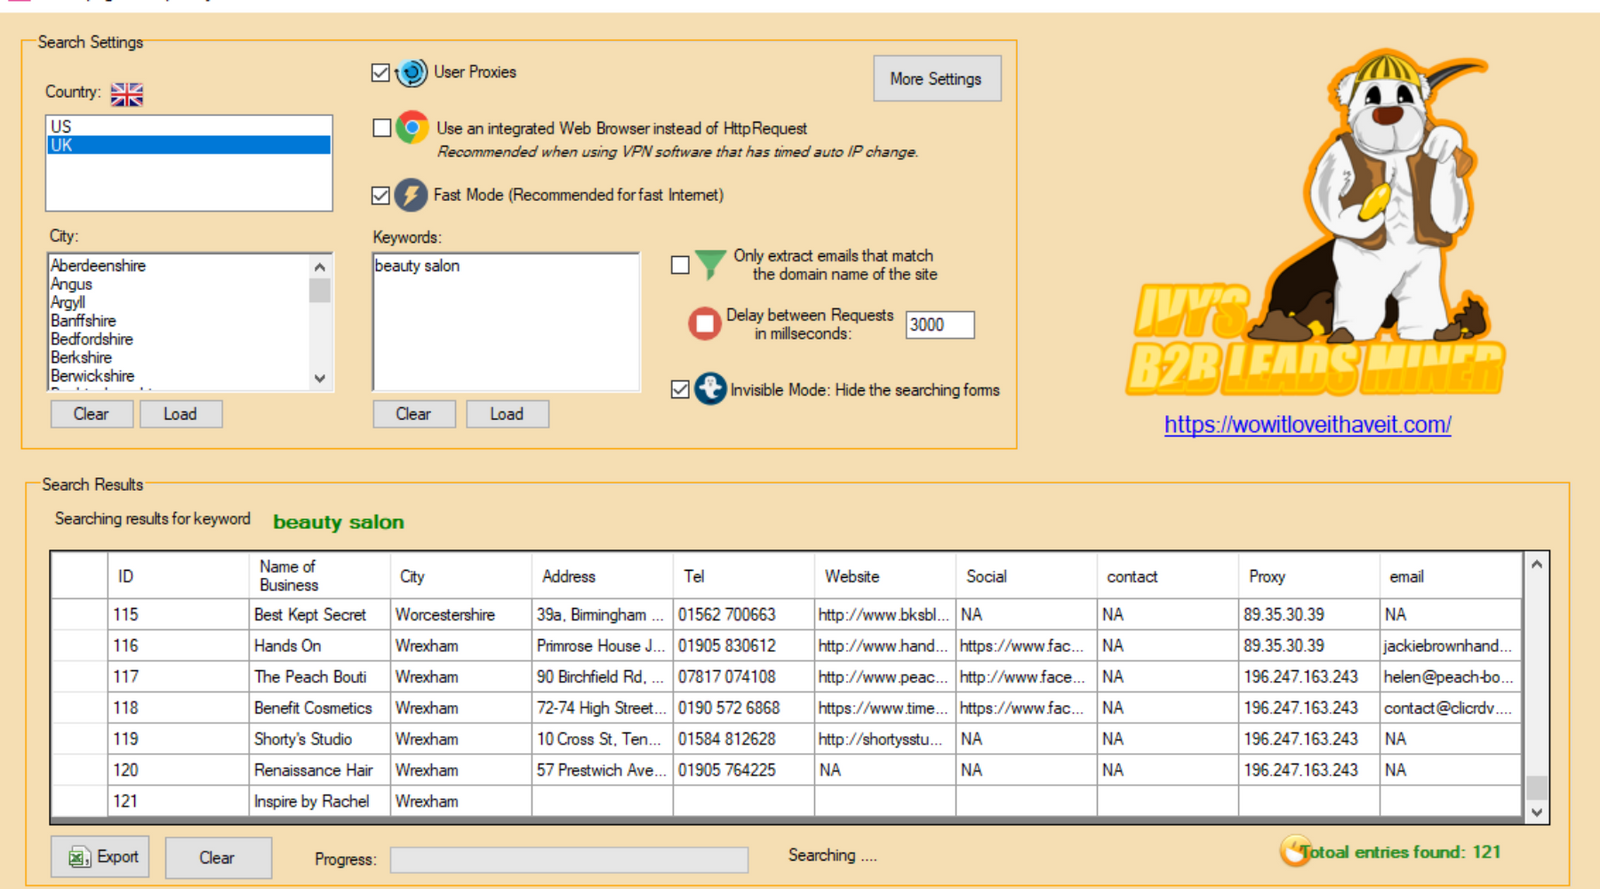 USA Yellow Pages Extractor: Scrape and Extract Data from